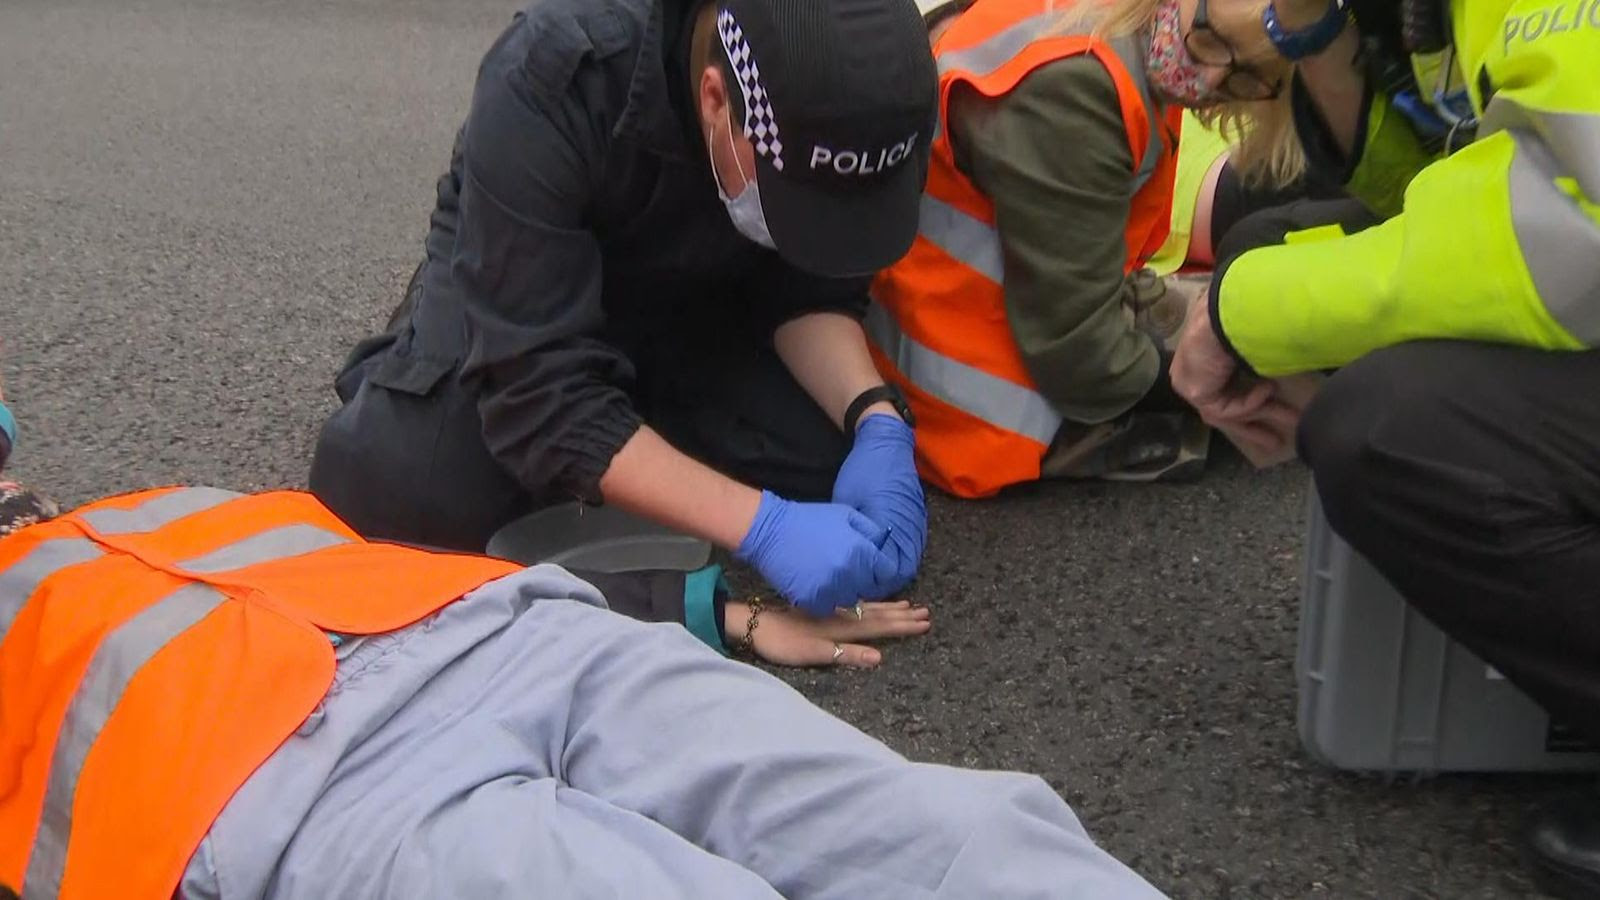 Climate protest: Demonstrators glue their hands to the M25